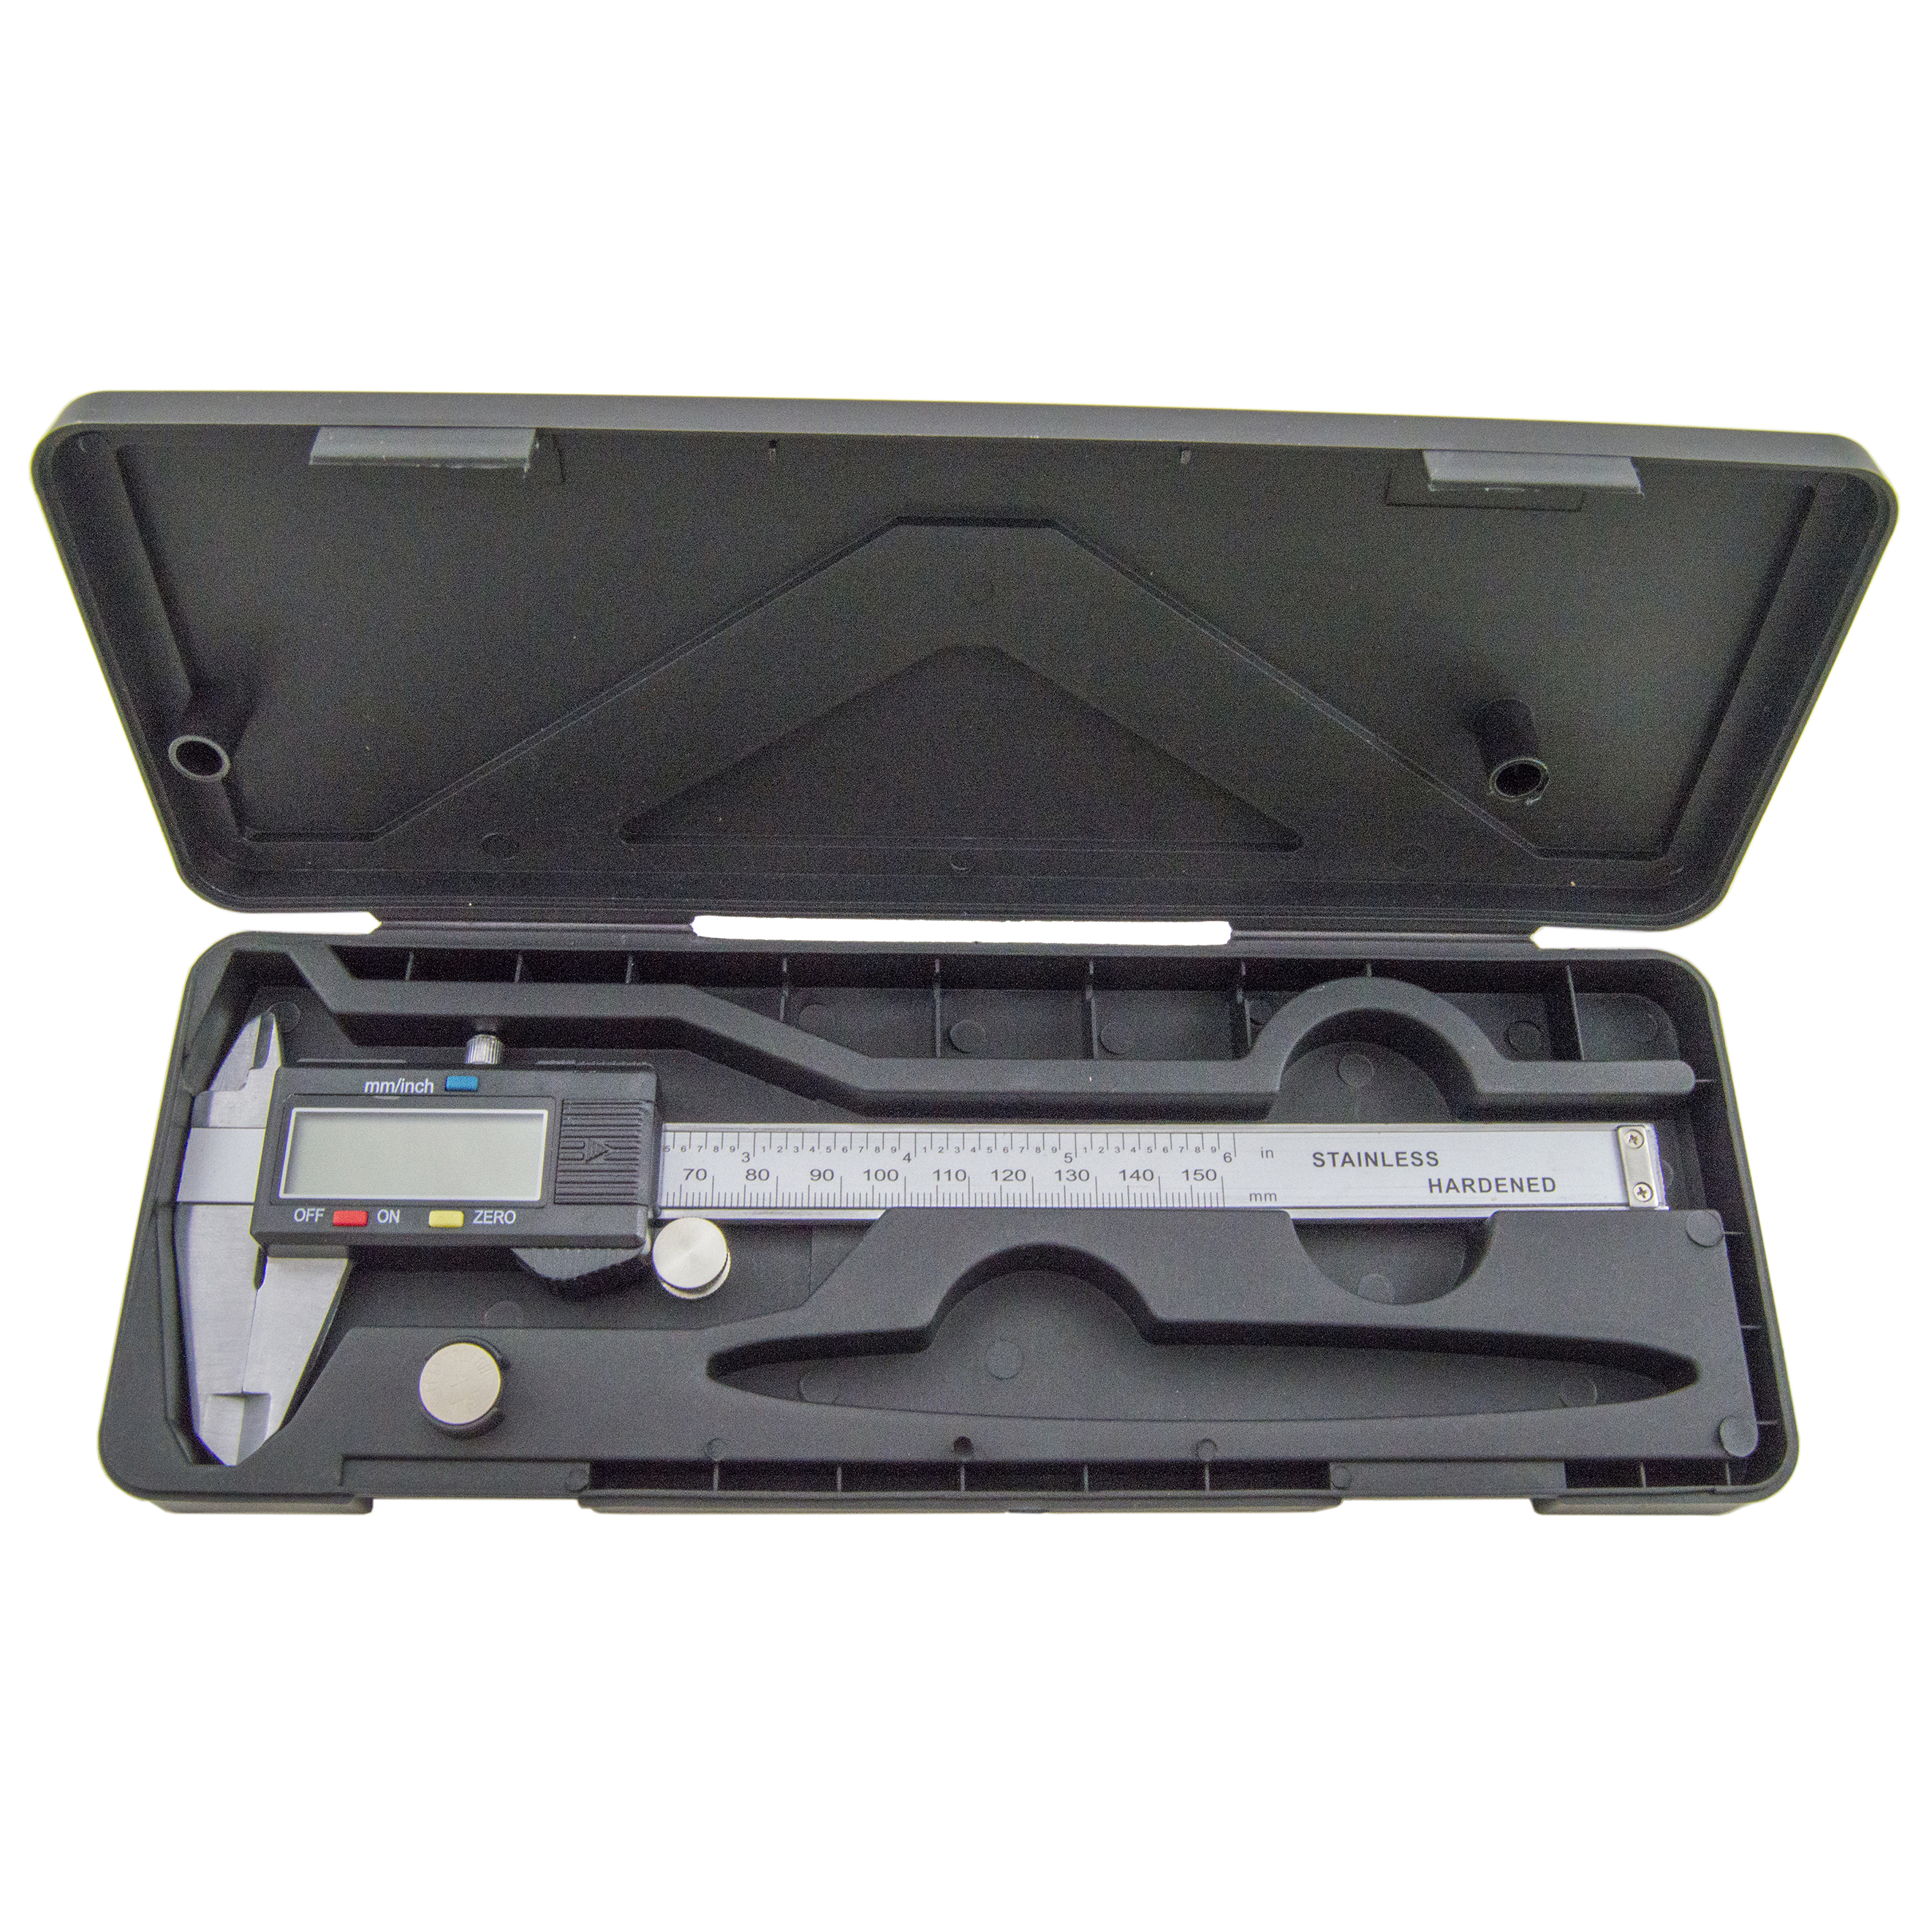 Steel 6-Inch Digital Caliper with Extra-Large LCD Screen with Battery and Case